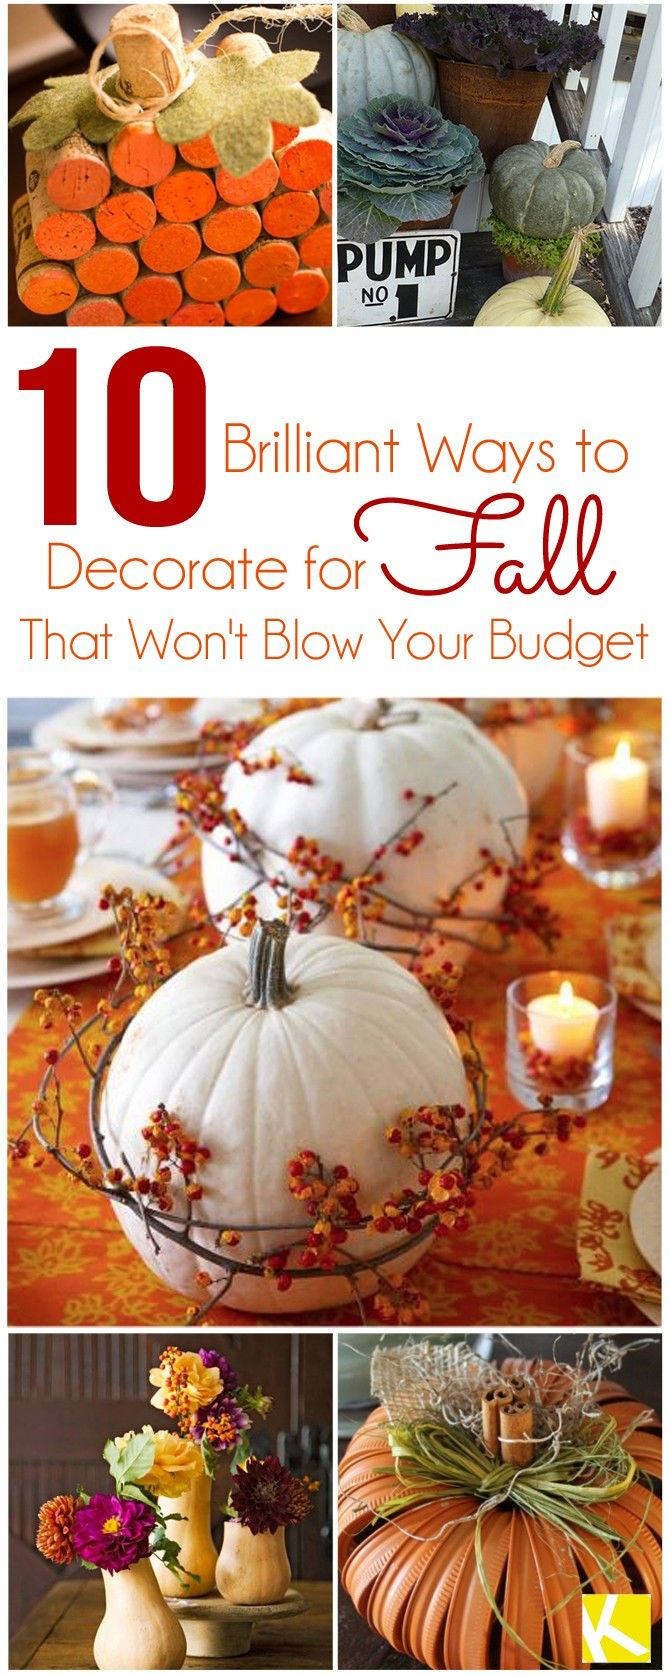 Decorate A Room: 10 Brilliant Ways To Decorate For Fall That Won't Blow